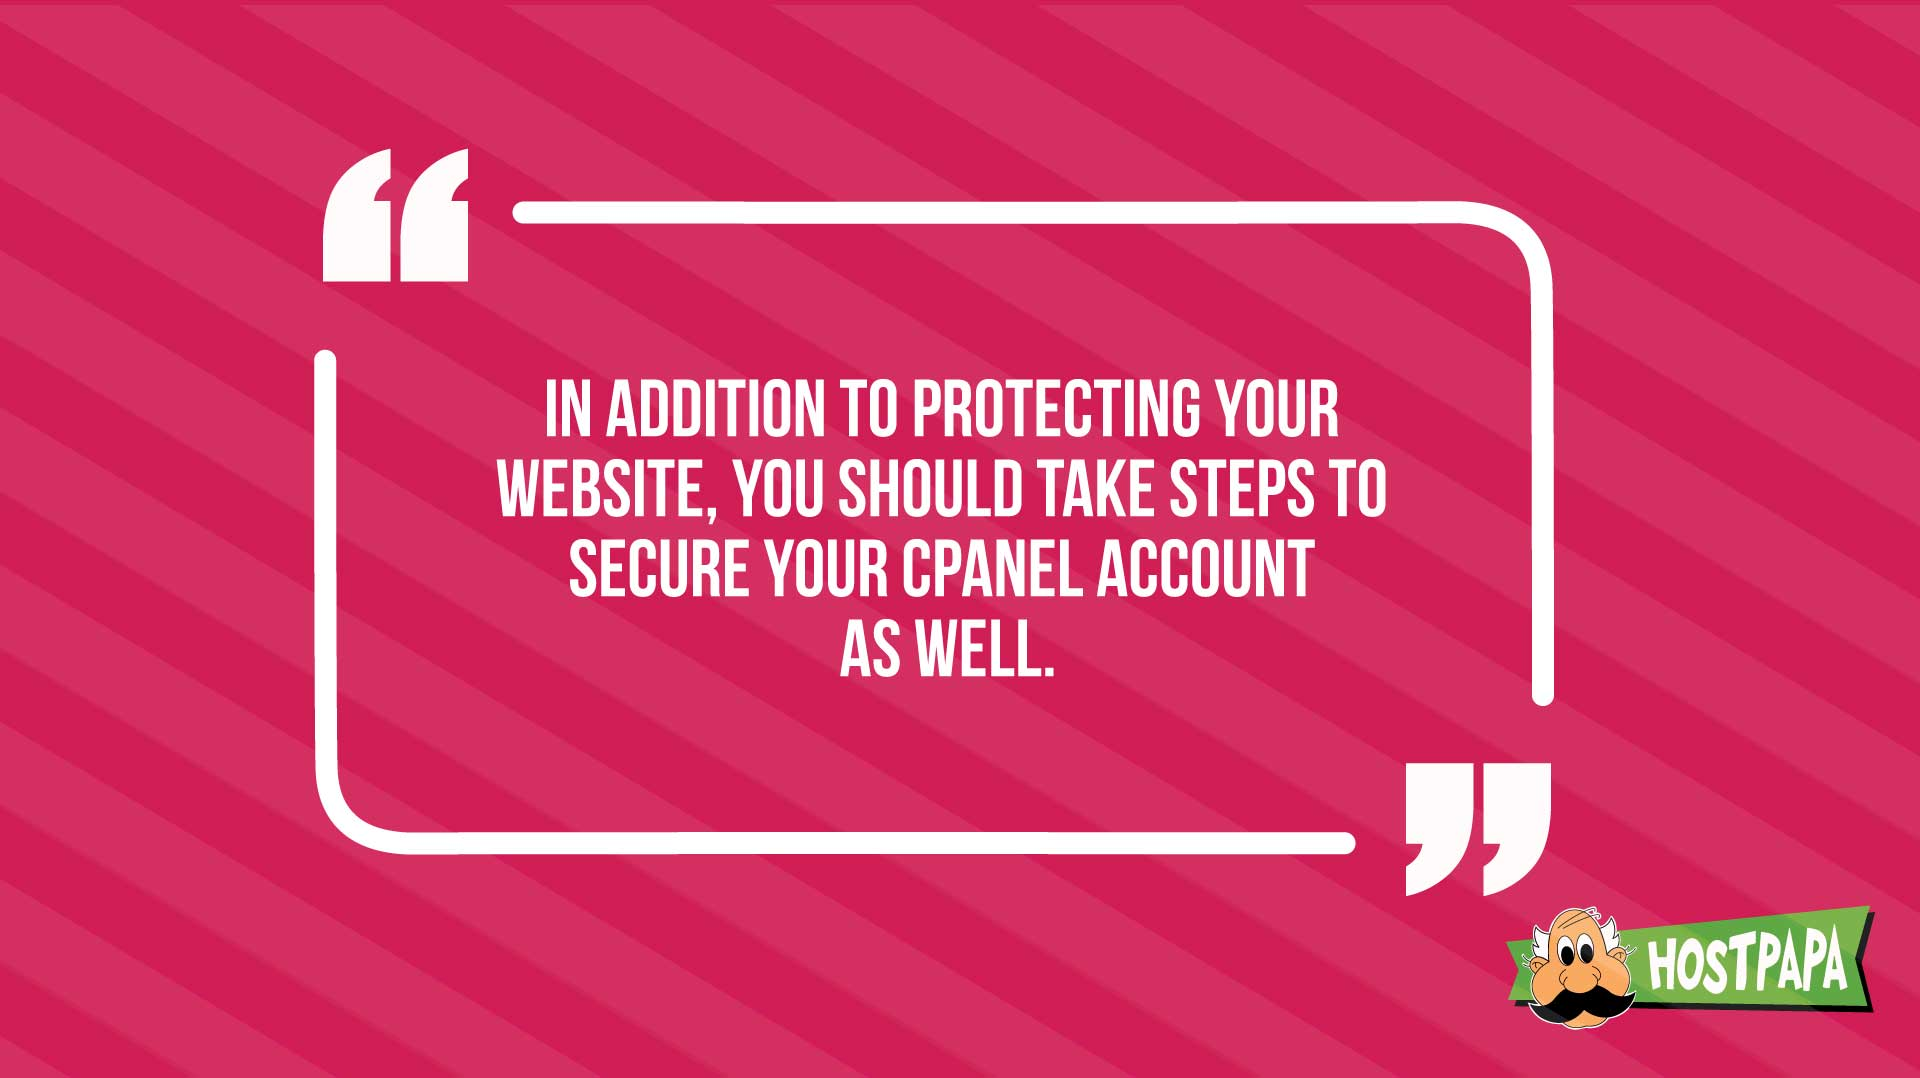 In addition to protecting your website, you should take steps to secure your cpanel account as well